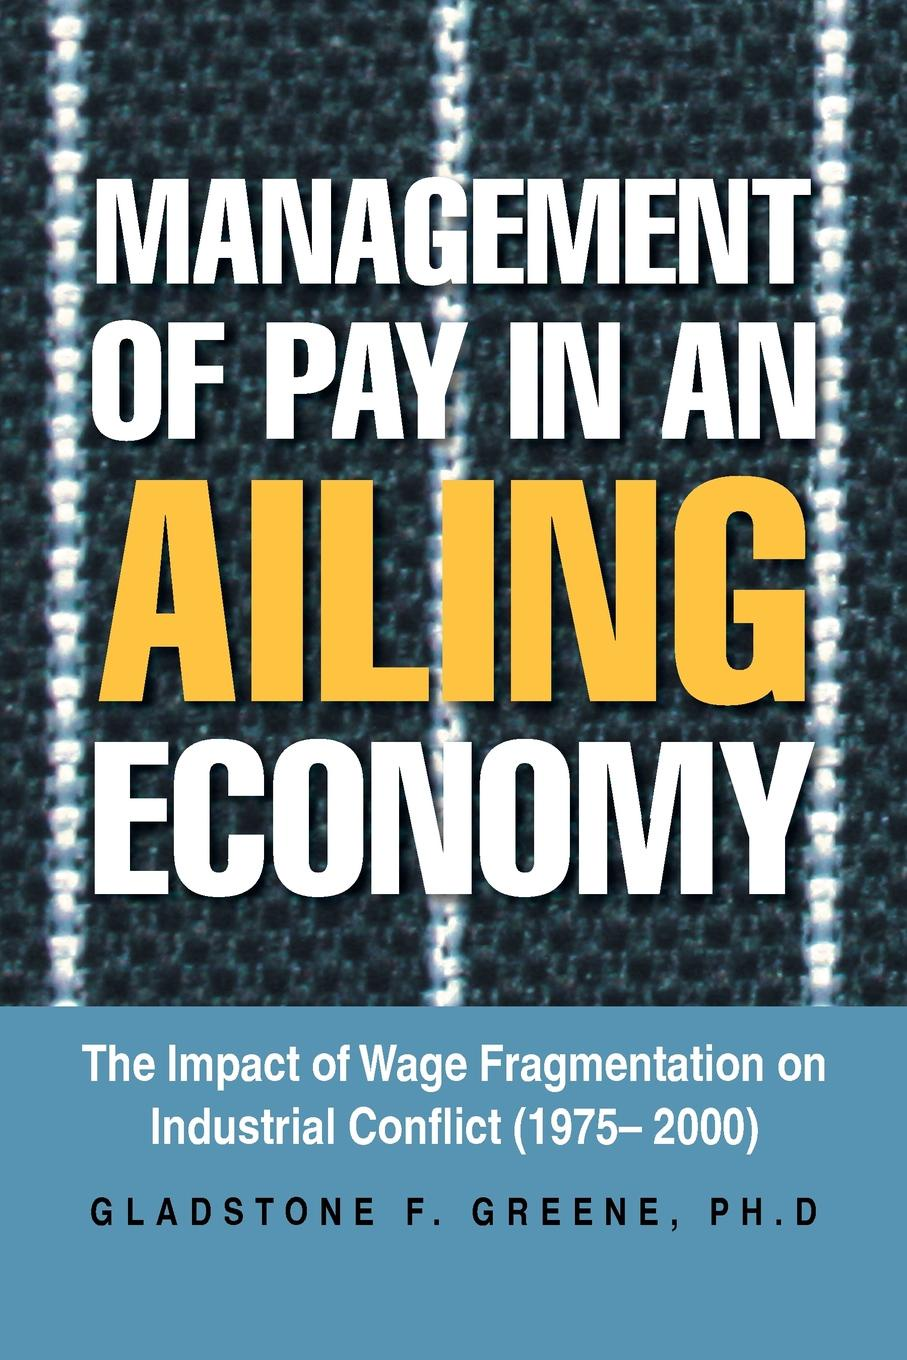 Gladstone F. Greene Management of Pay in an Ailing Economy. The Impact of Wage Fragmentation on Industrial Conflict (1975- 2000) цена в Москве и Питере